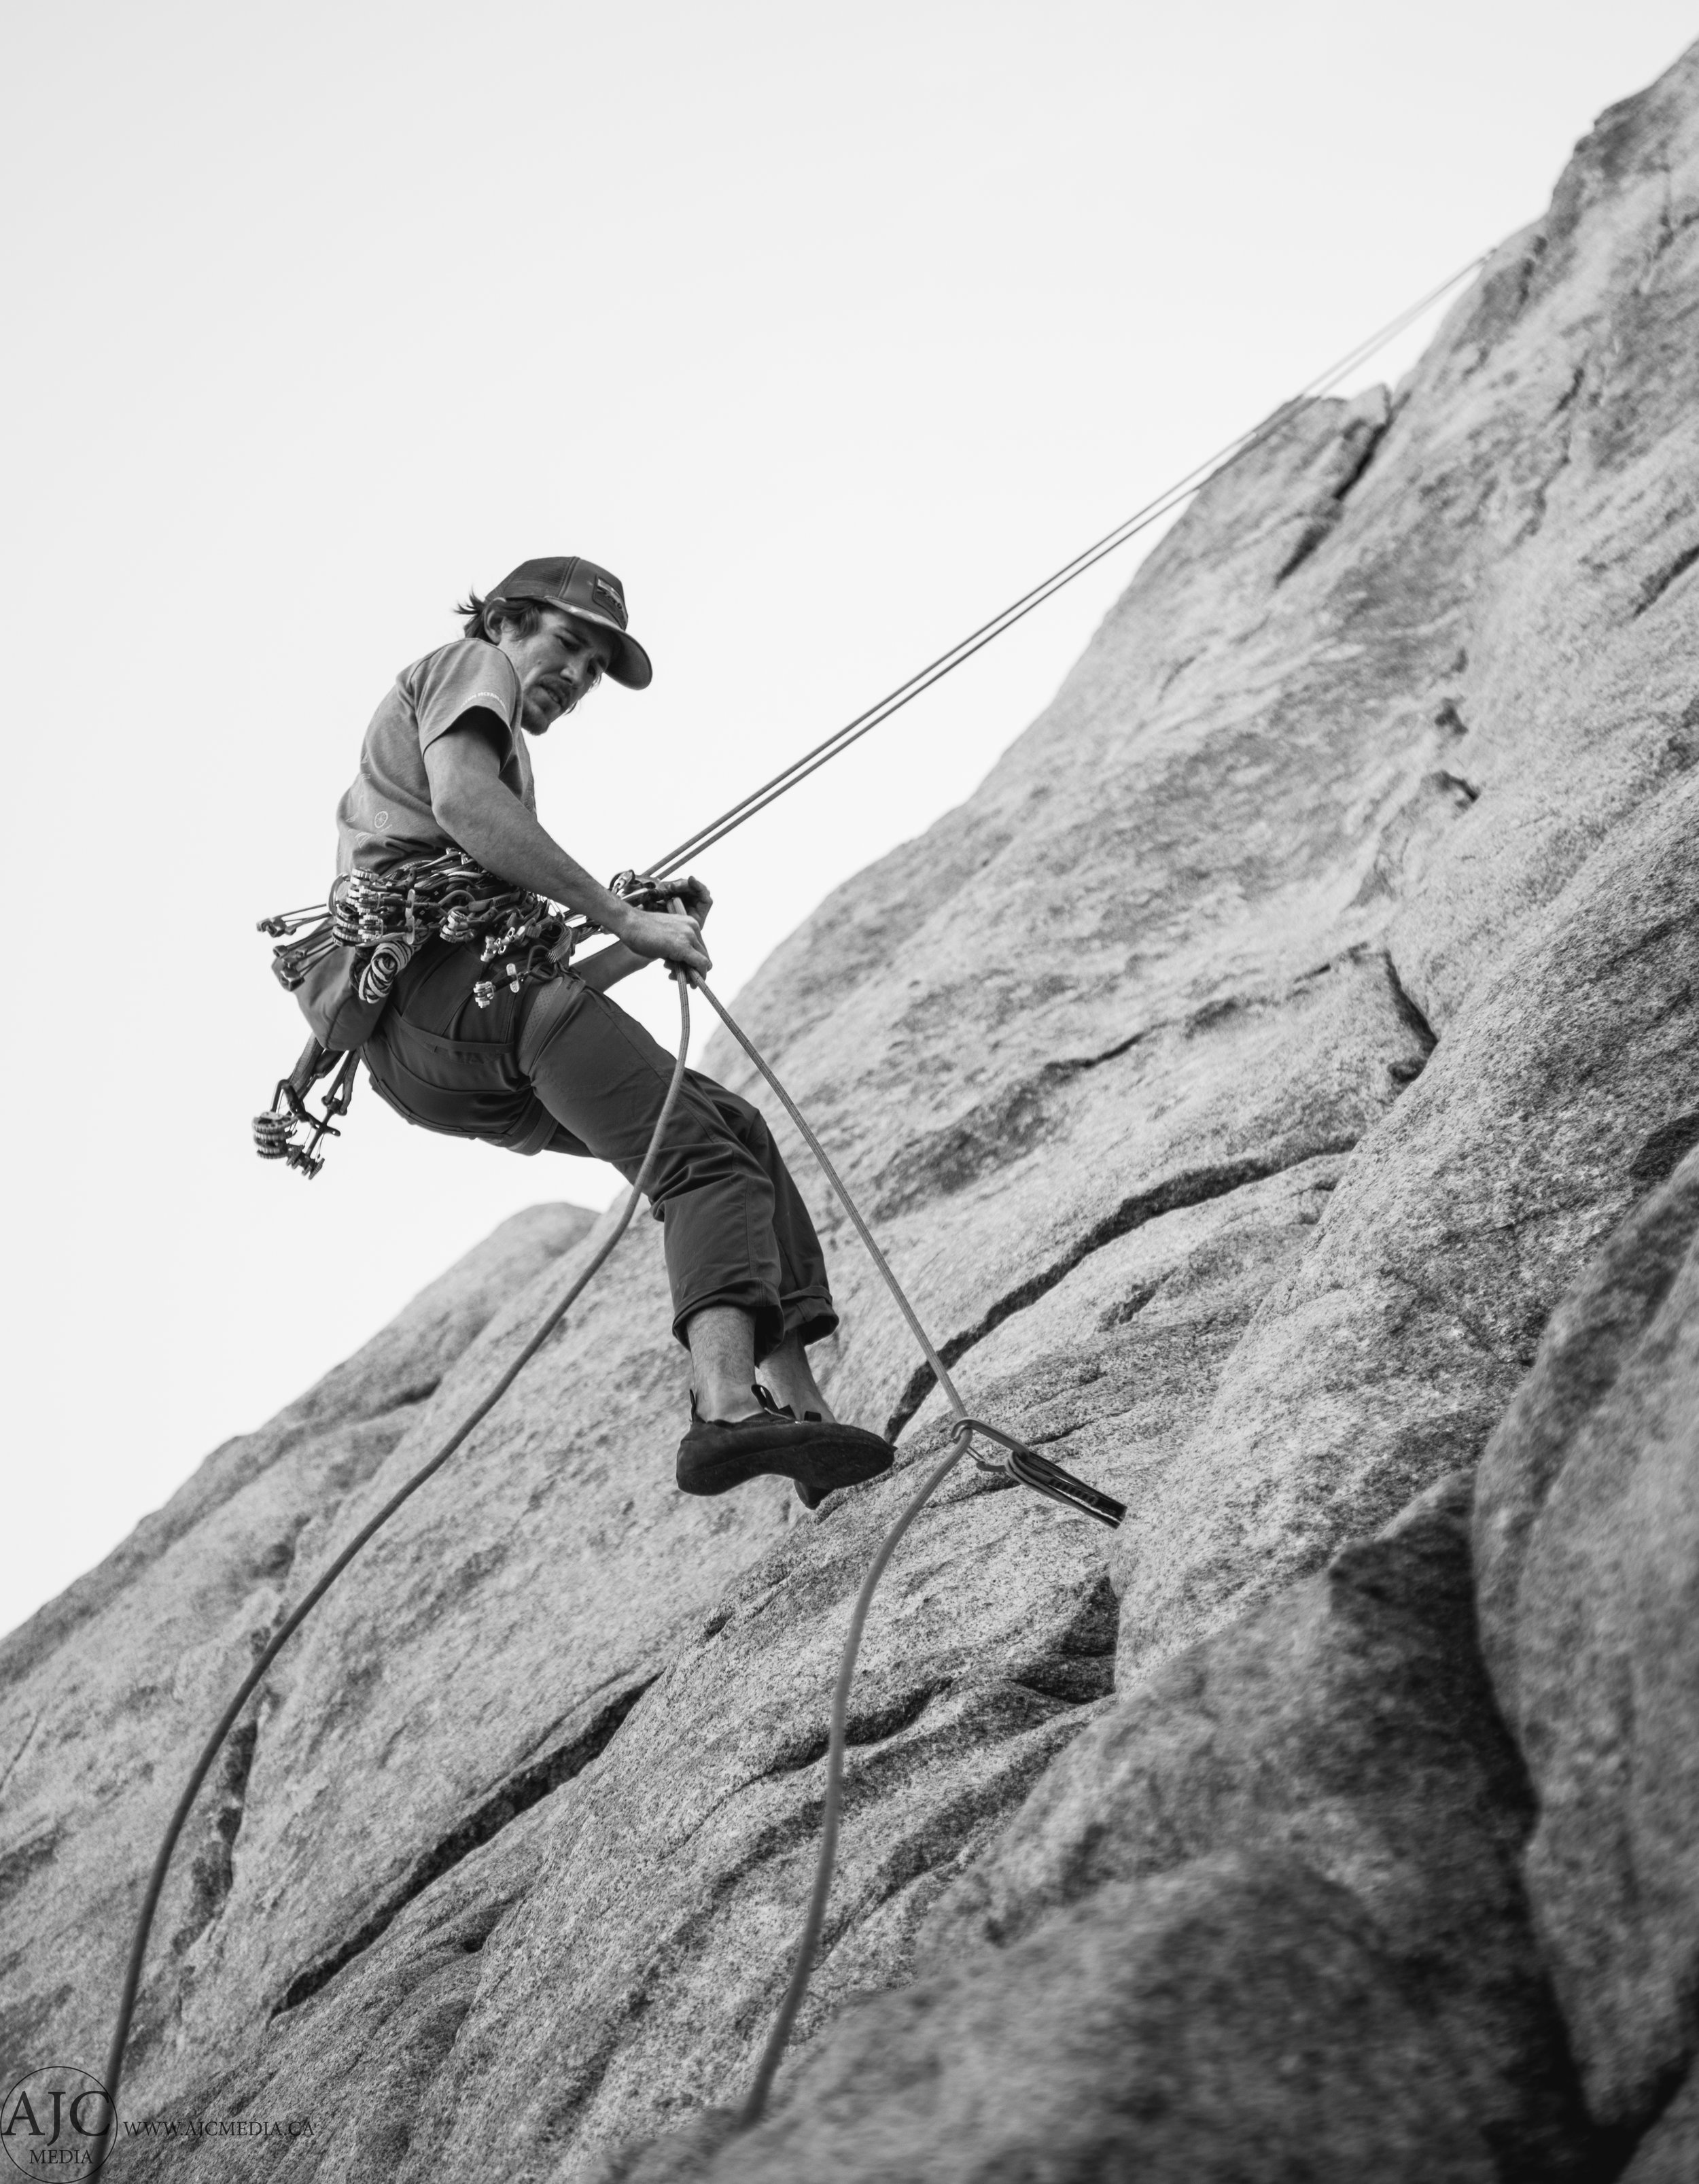 I often wish that I was actually shooting in black and white film back in the 60's when climbers were first discovering many of the now popular routes in J-Tree...this shot kind of eludes that narrative.